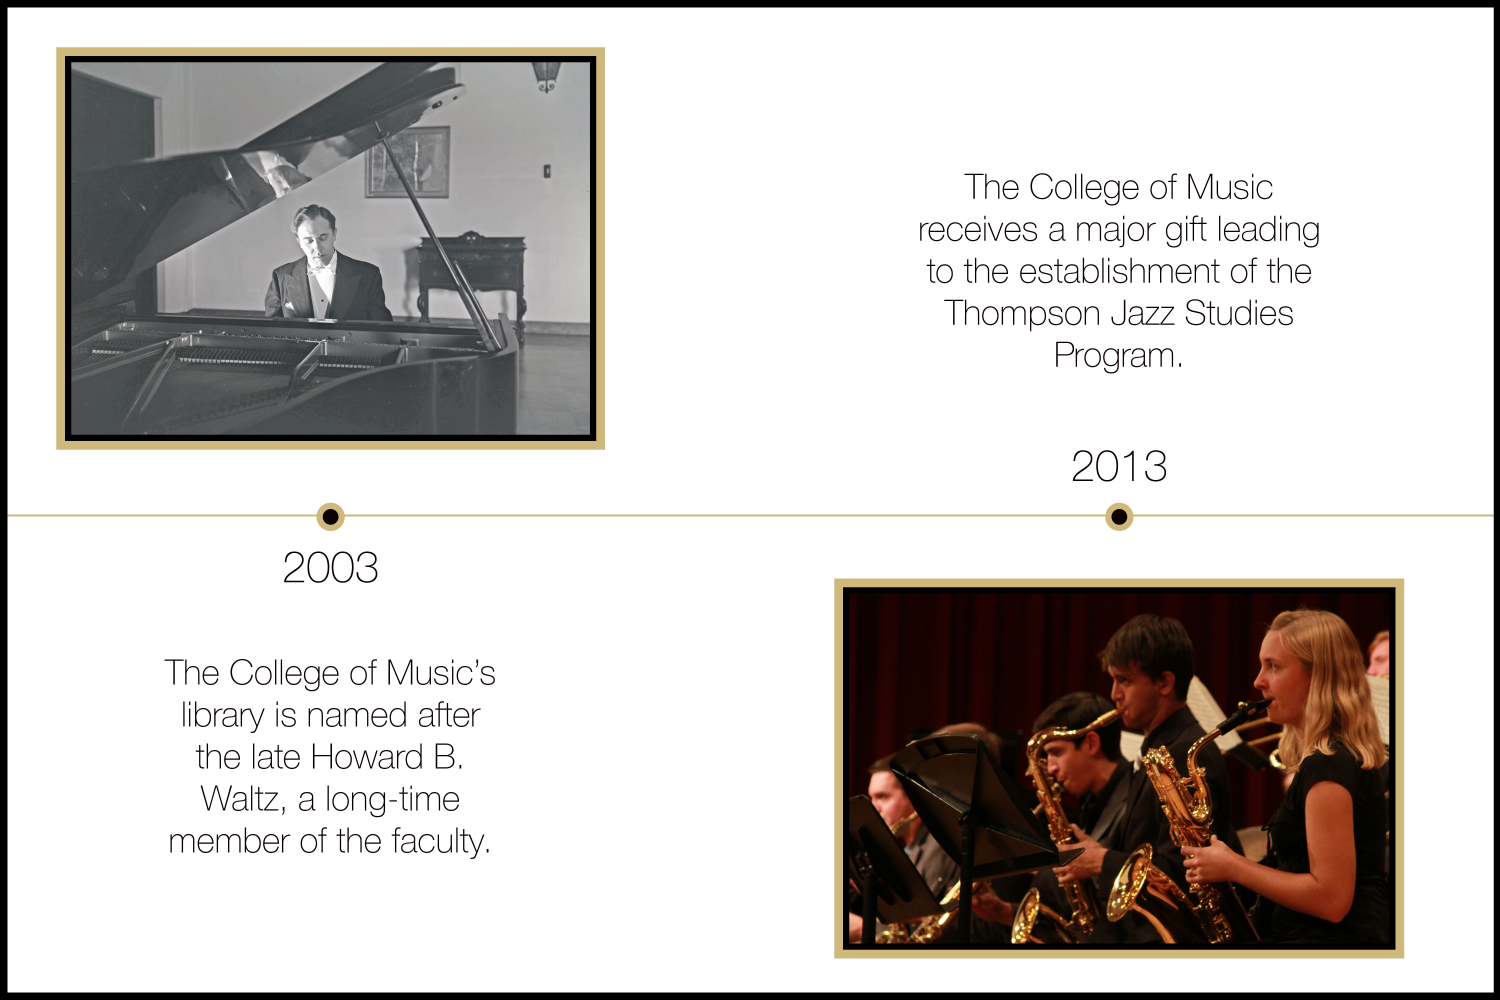 howard waltz and jazz group 2003-2013